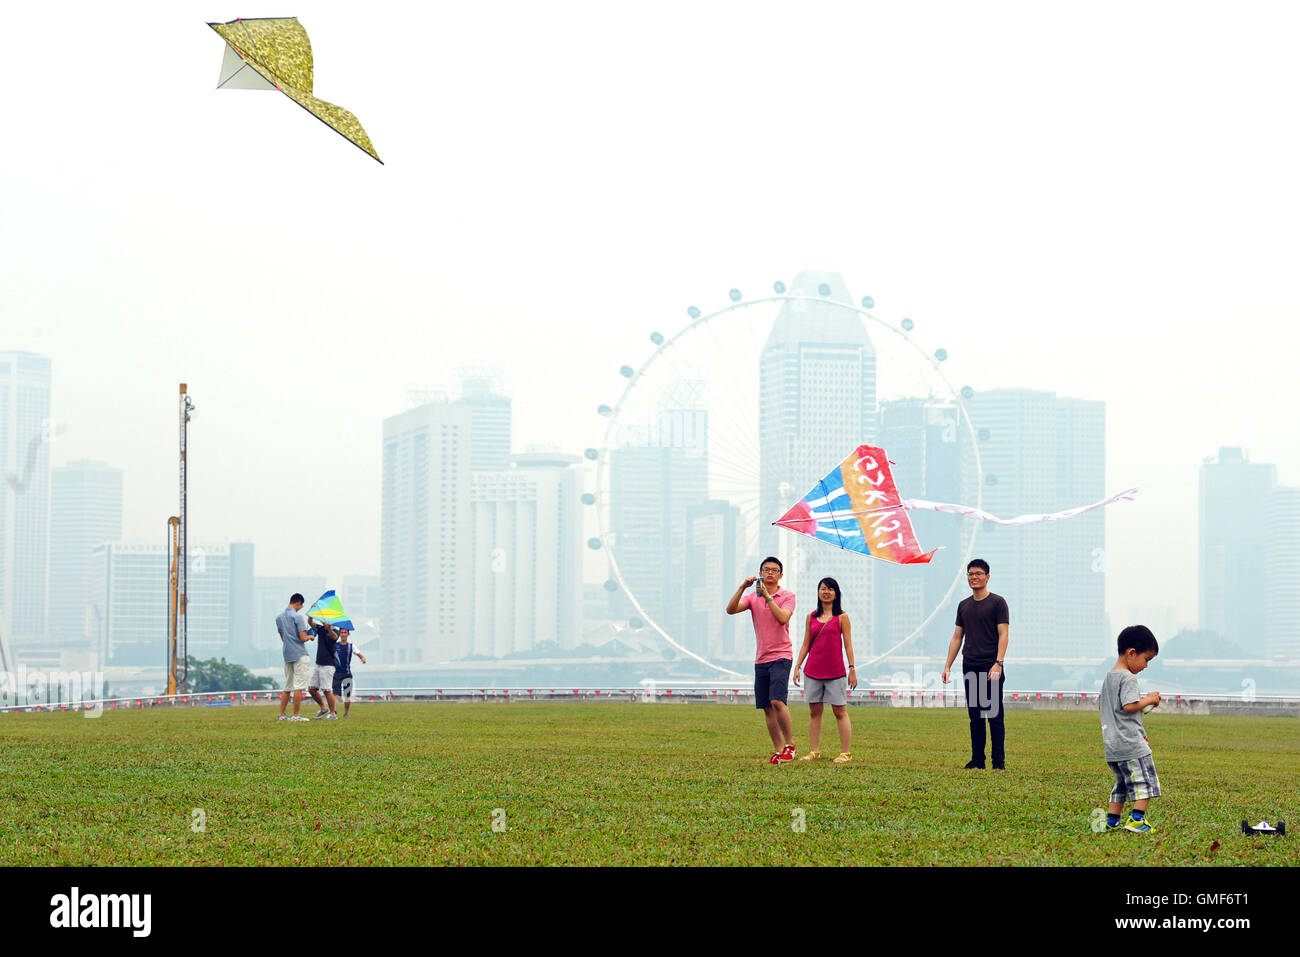 Singapore. 26th Aug, 2016. People fly kites in Singapore's Marina Bay area, on Aug. 26, 2016. The three-hour - Stock Image